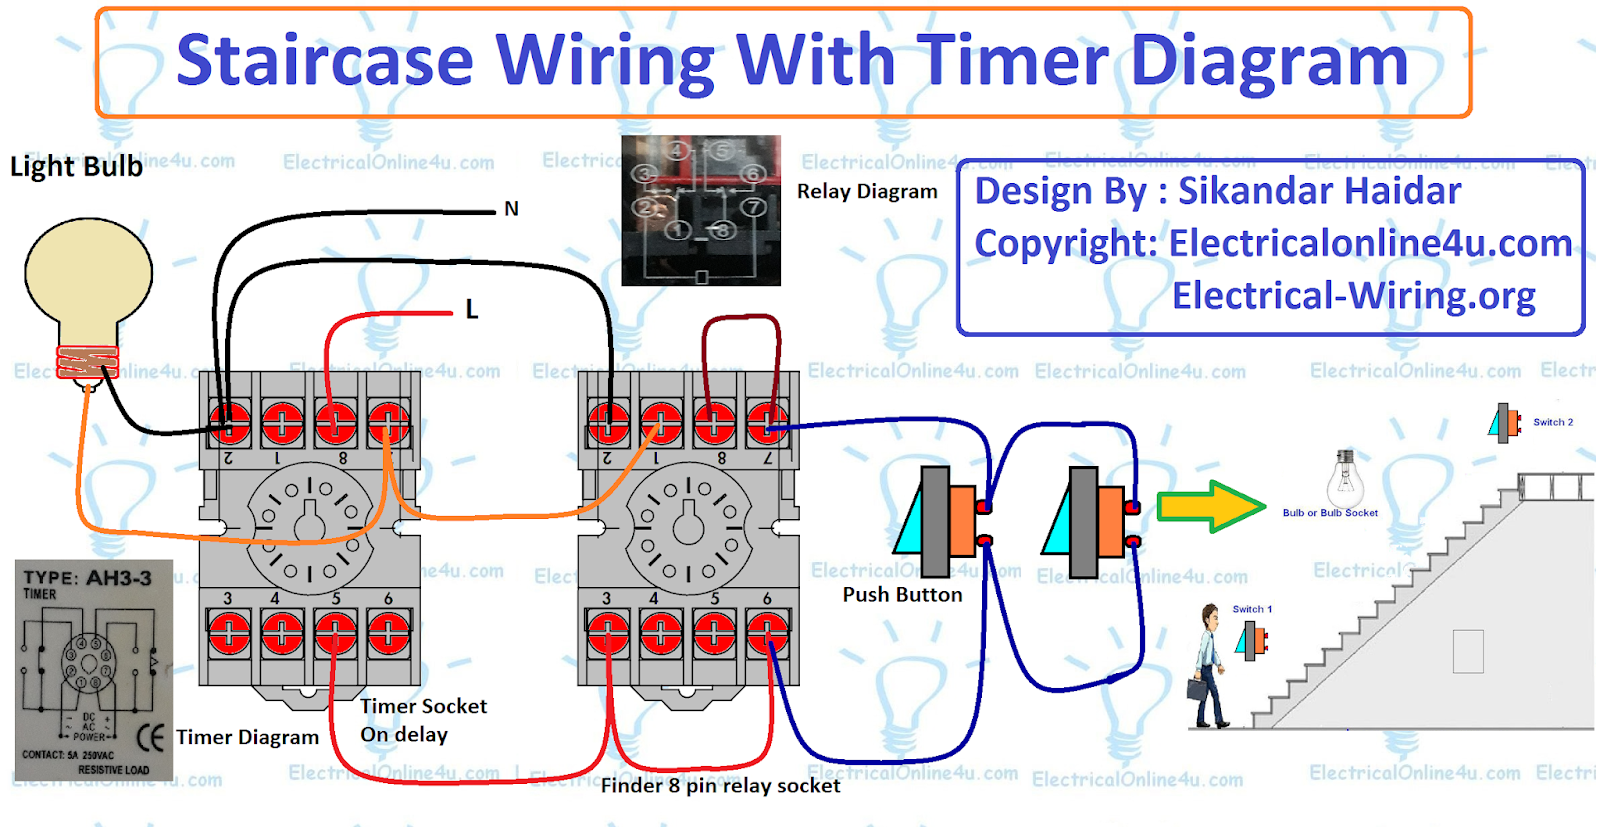 This Post Is About The Staircase Timer Wiring Diagram In The Diagram I Use The On Delay Timer Finder 8 Pin Relay Re Electrical Circuit Diagram Timer Diagram